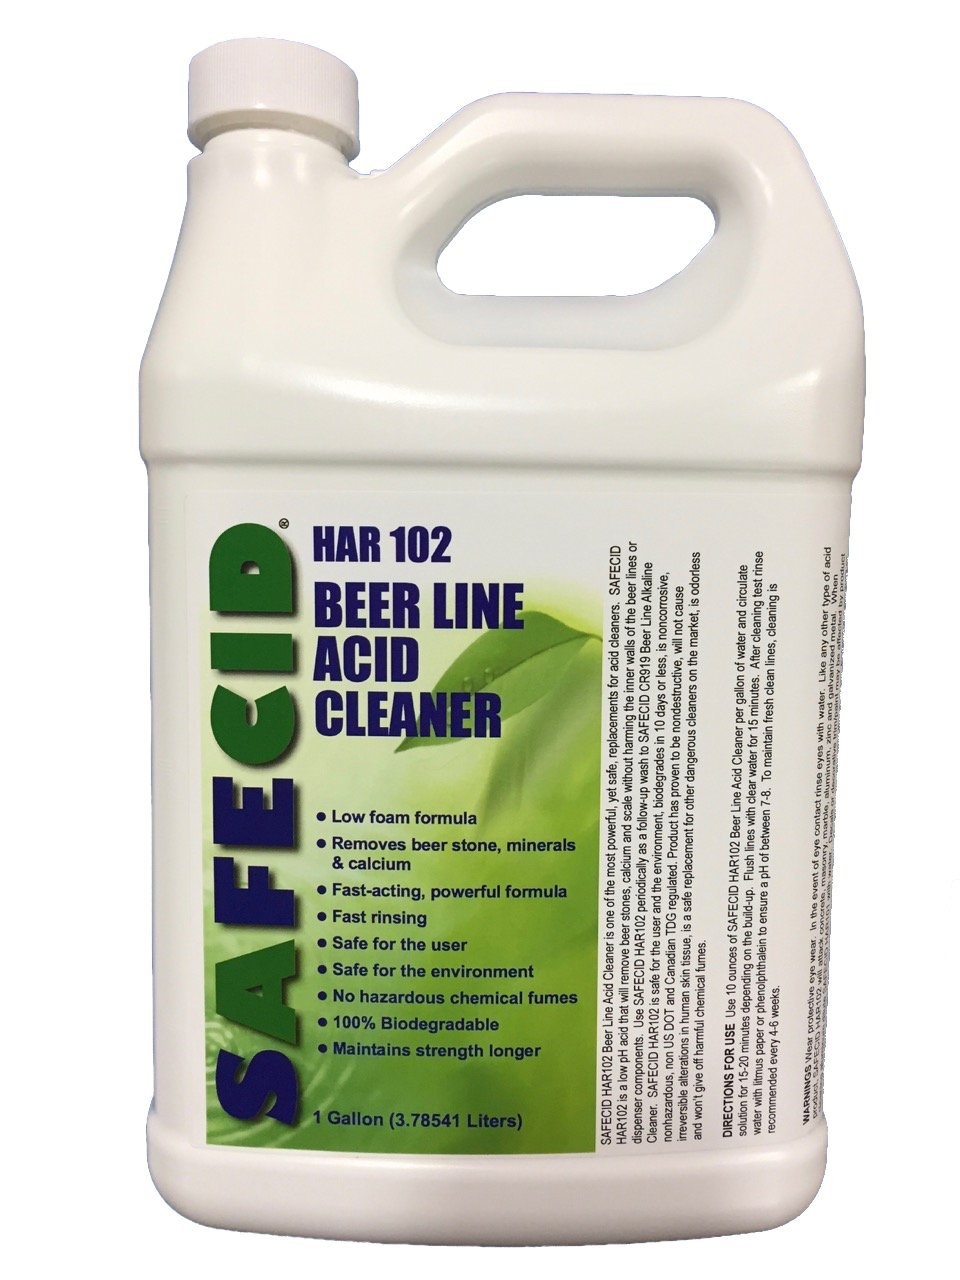 Beer Line Acid Cleaner (2 Pack Gallon)